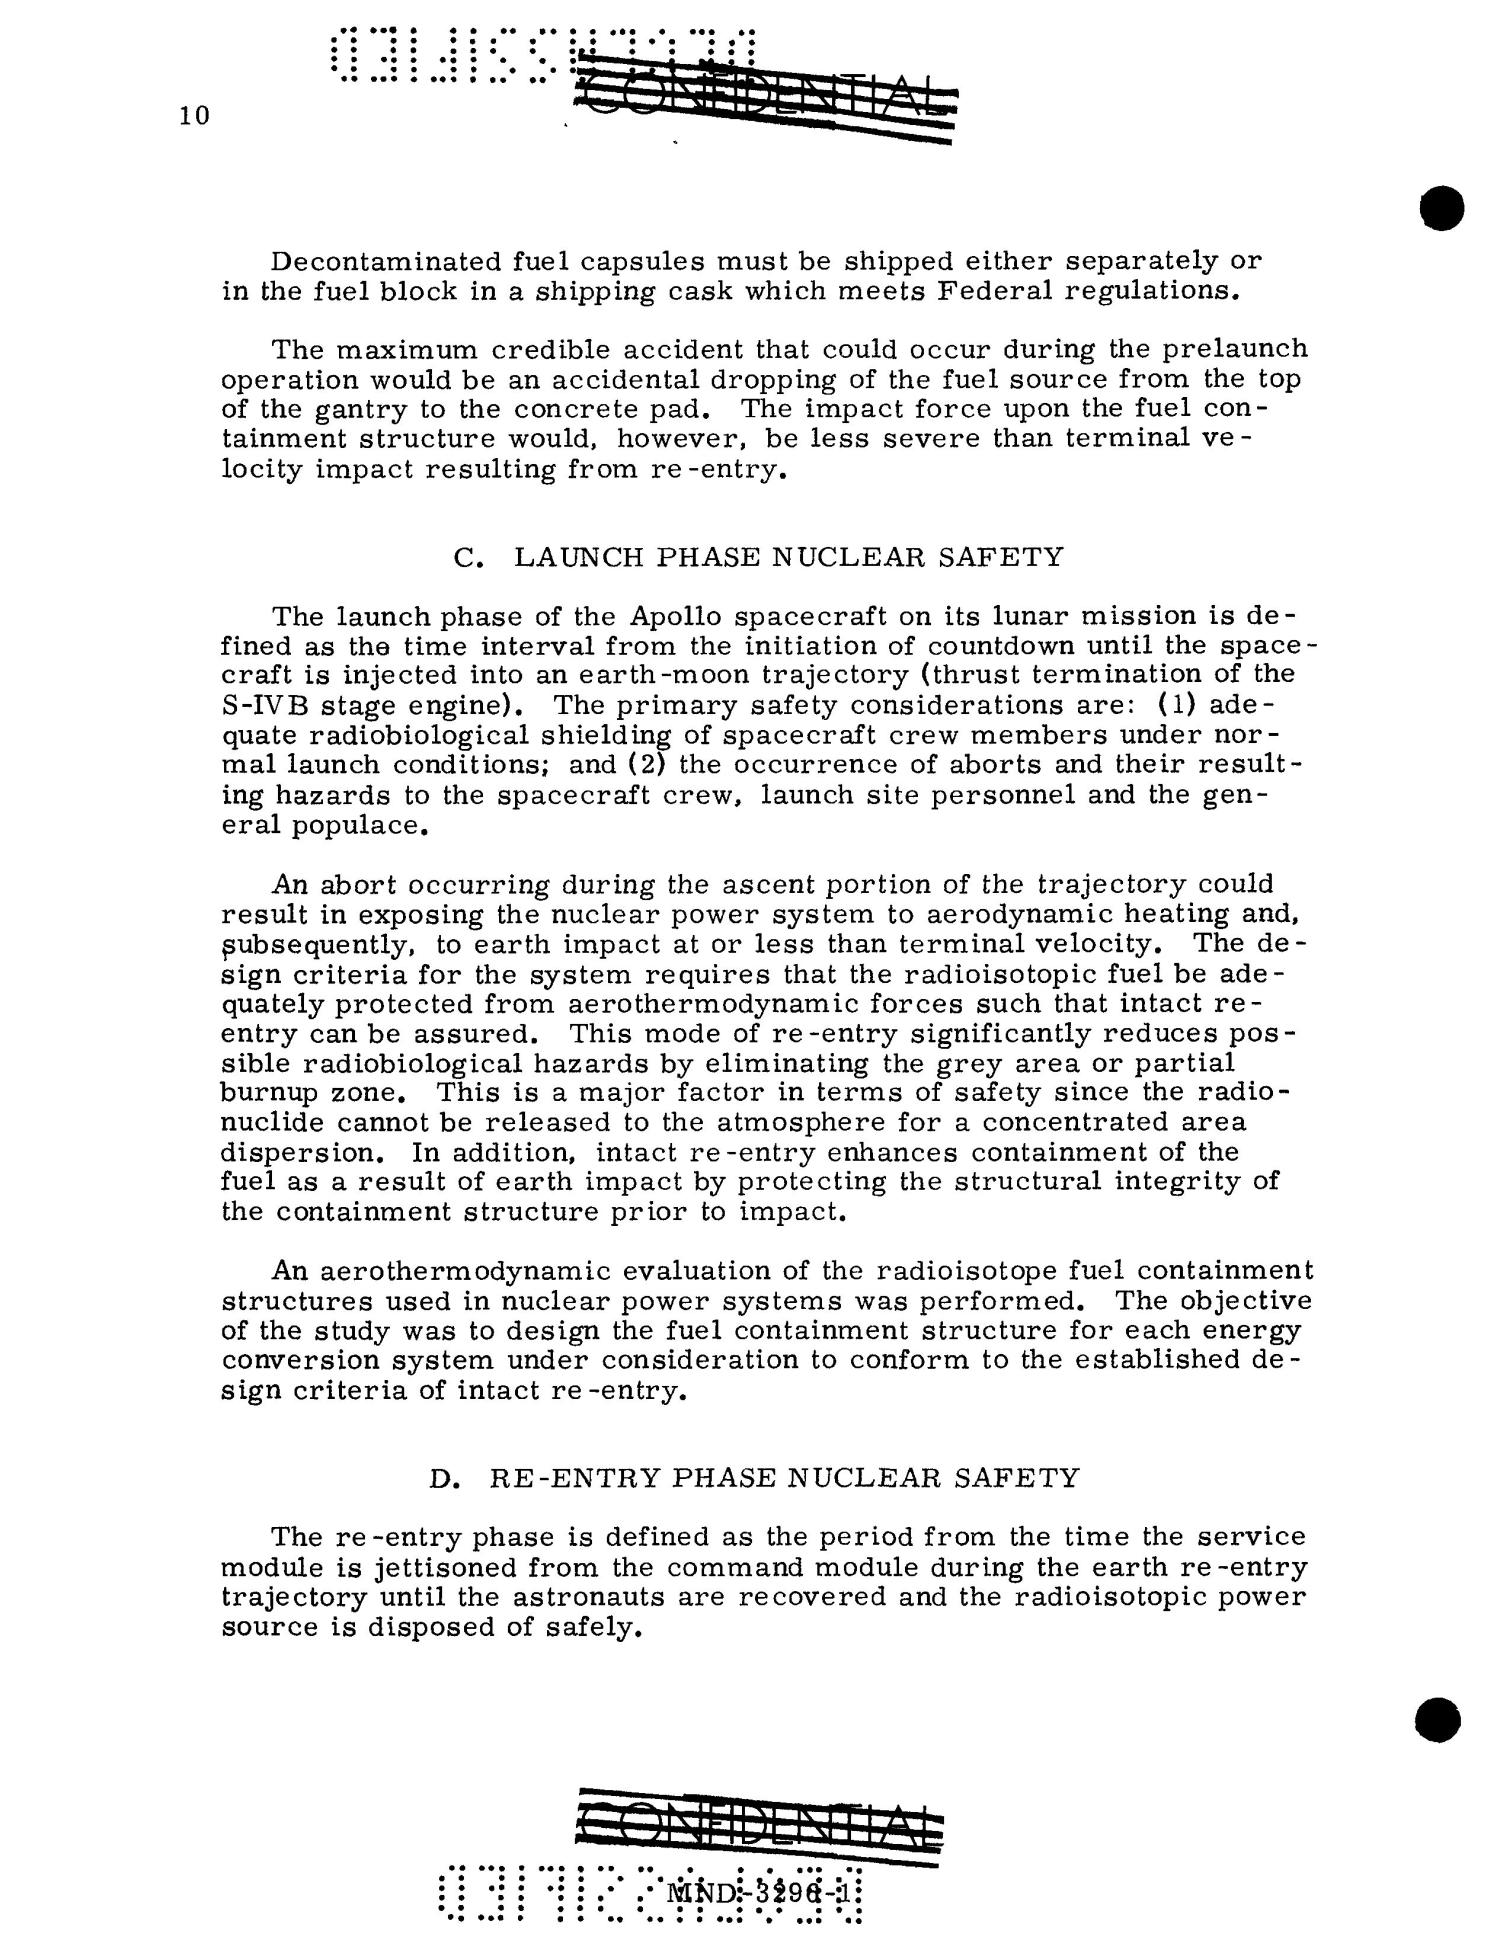 Feasibility of Isotopic Power for Manned Lunar Missions. Volume 1. Summary.                                                                                                      [Sequence #]: 21 of 61